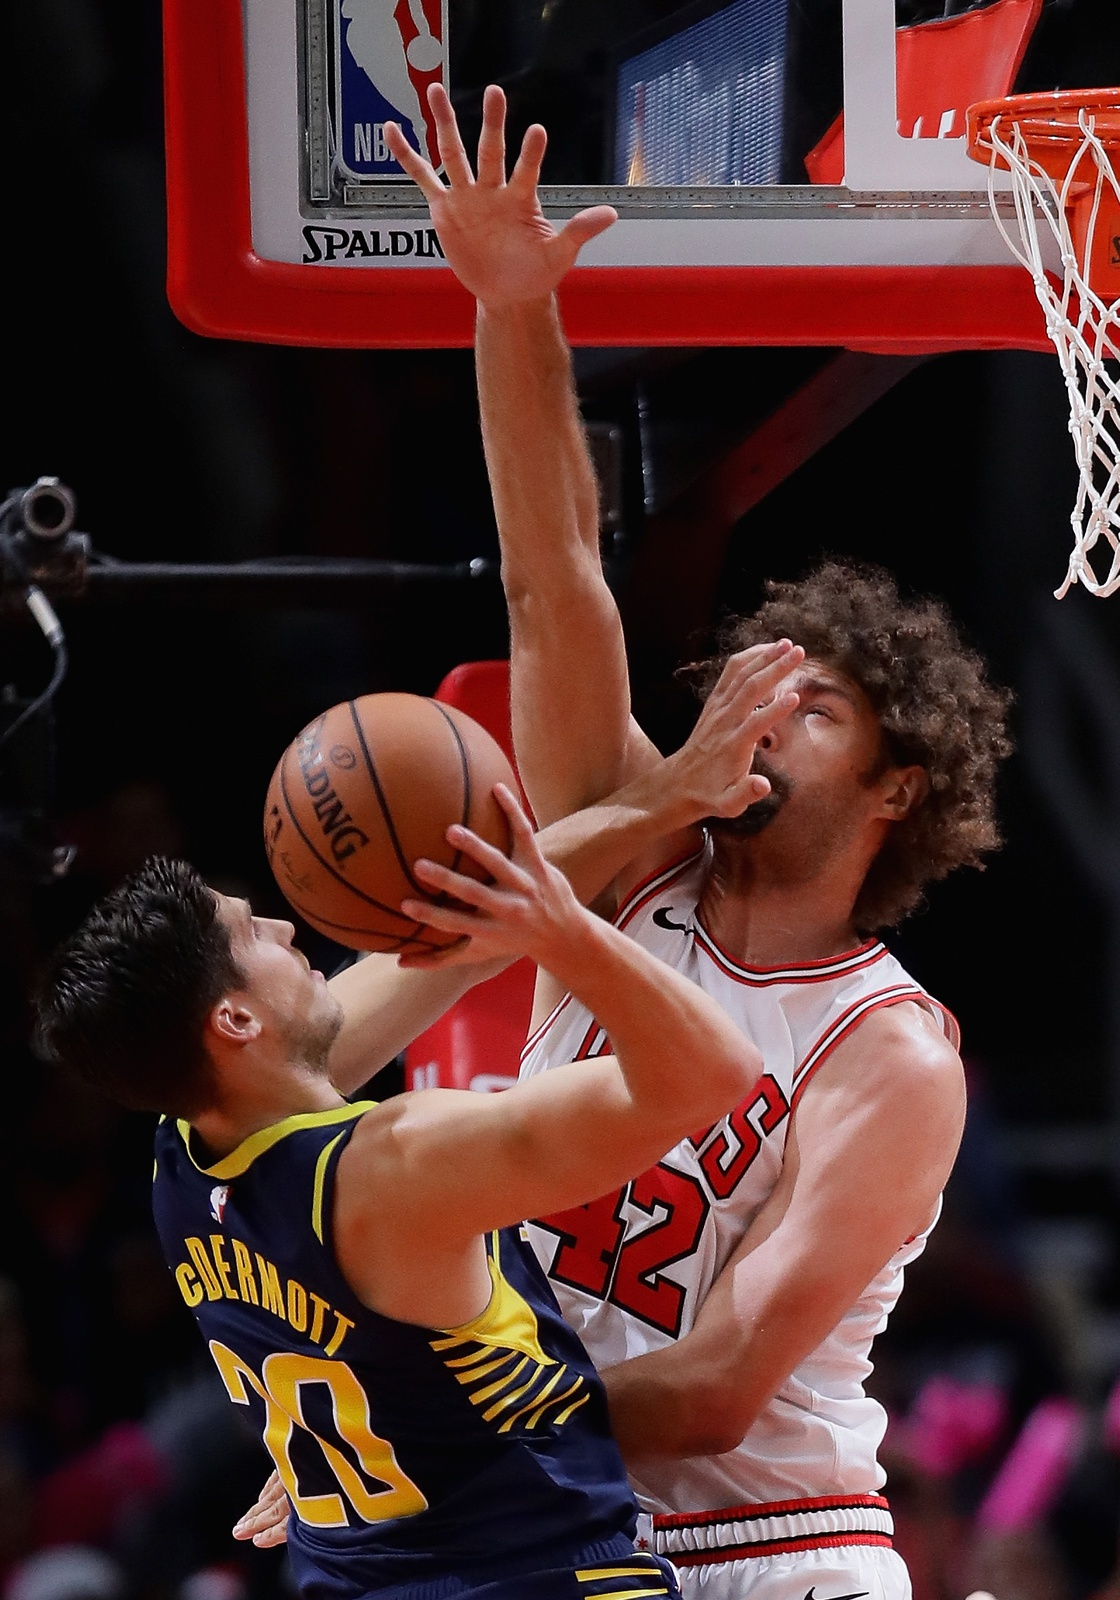 Doug McDermott #20 of the Indiana Pacers is called for an offensive foul against Robin Lopez #42 of the Chicago Bulls during a preseason game at the United Center on October 10, 2018 in Chicago, Illinois.